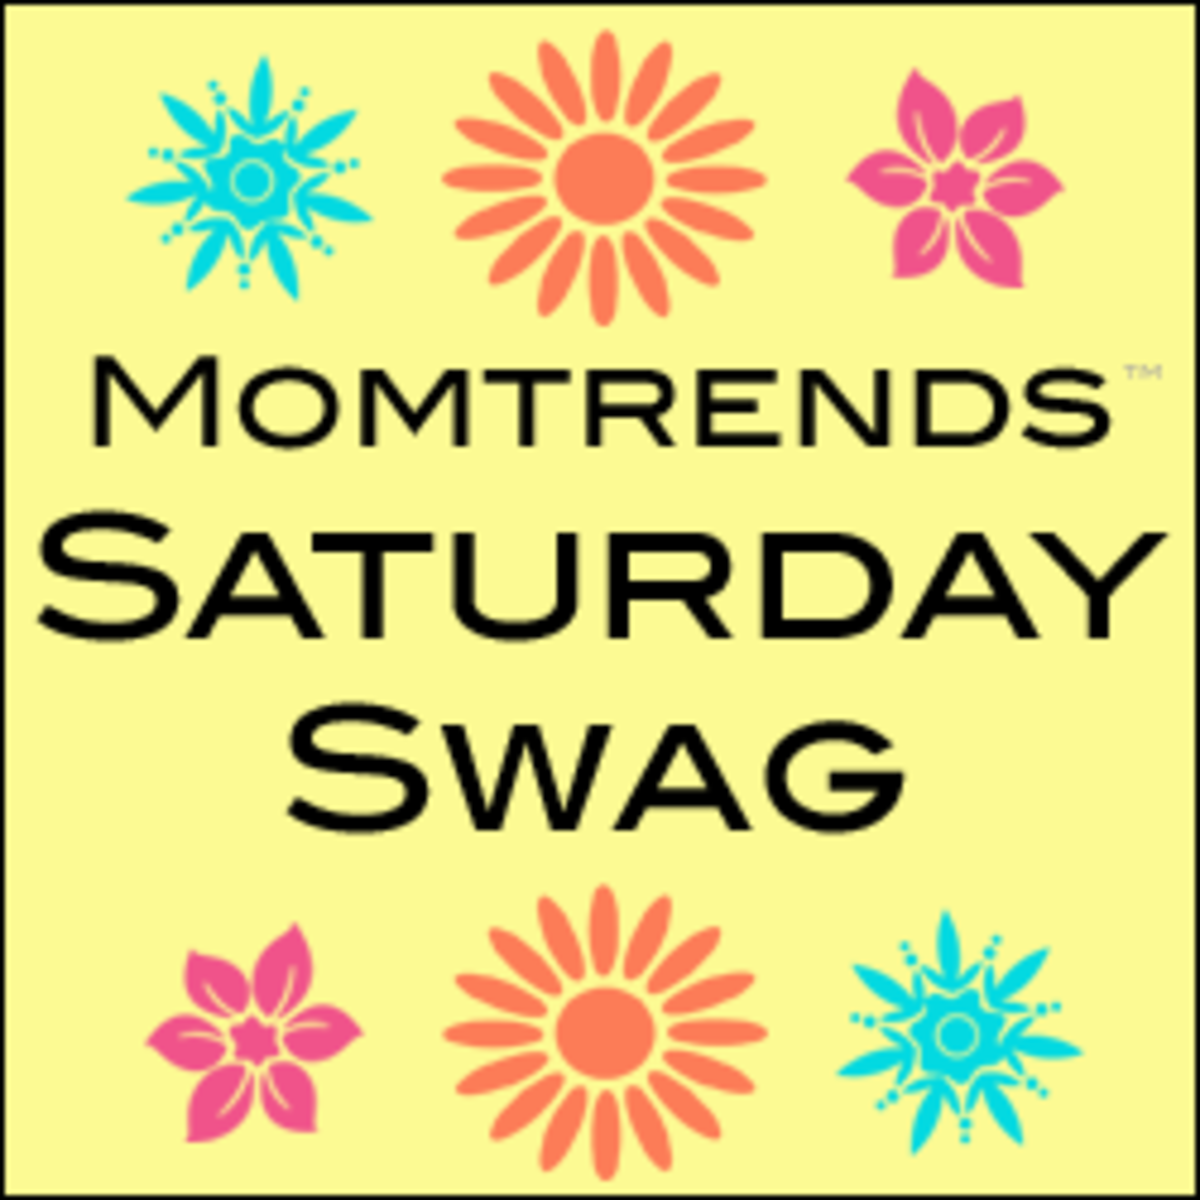 Saturday Swag, Momtrends, Giveaways